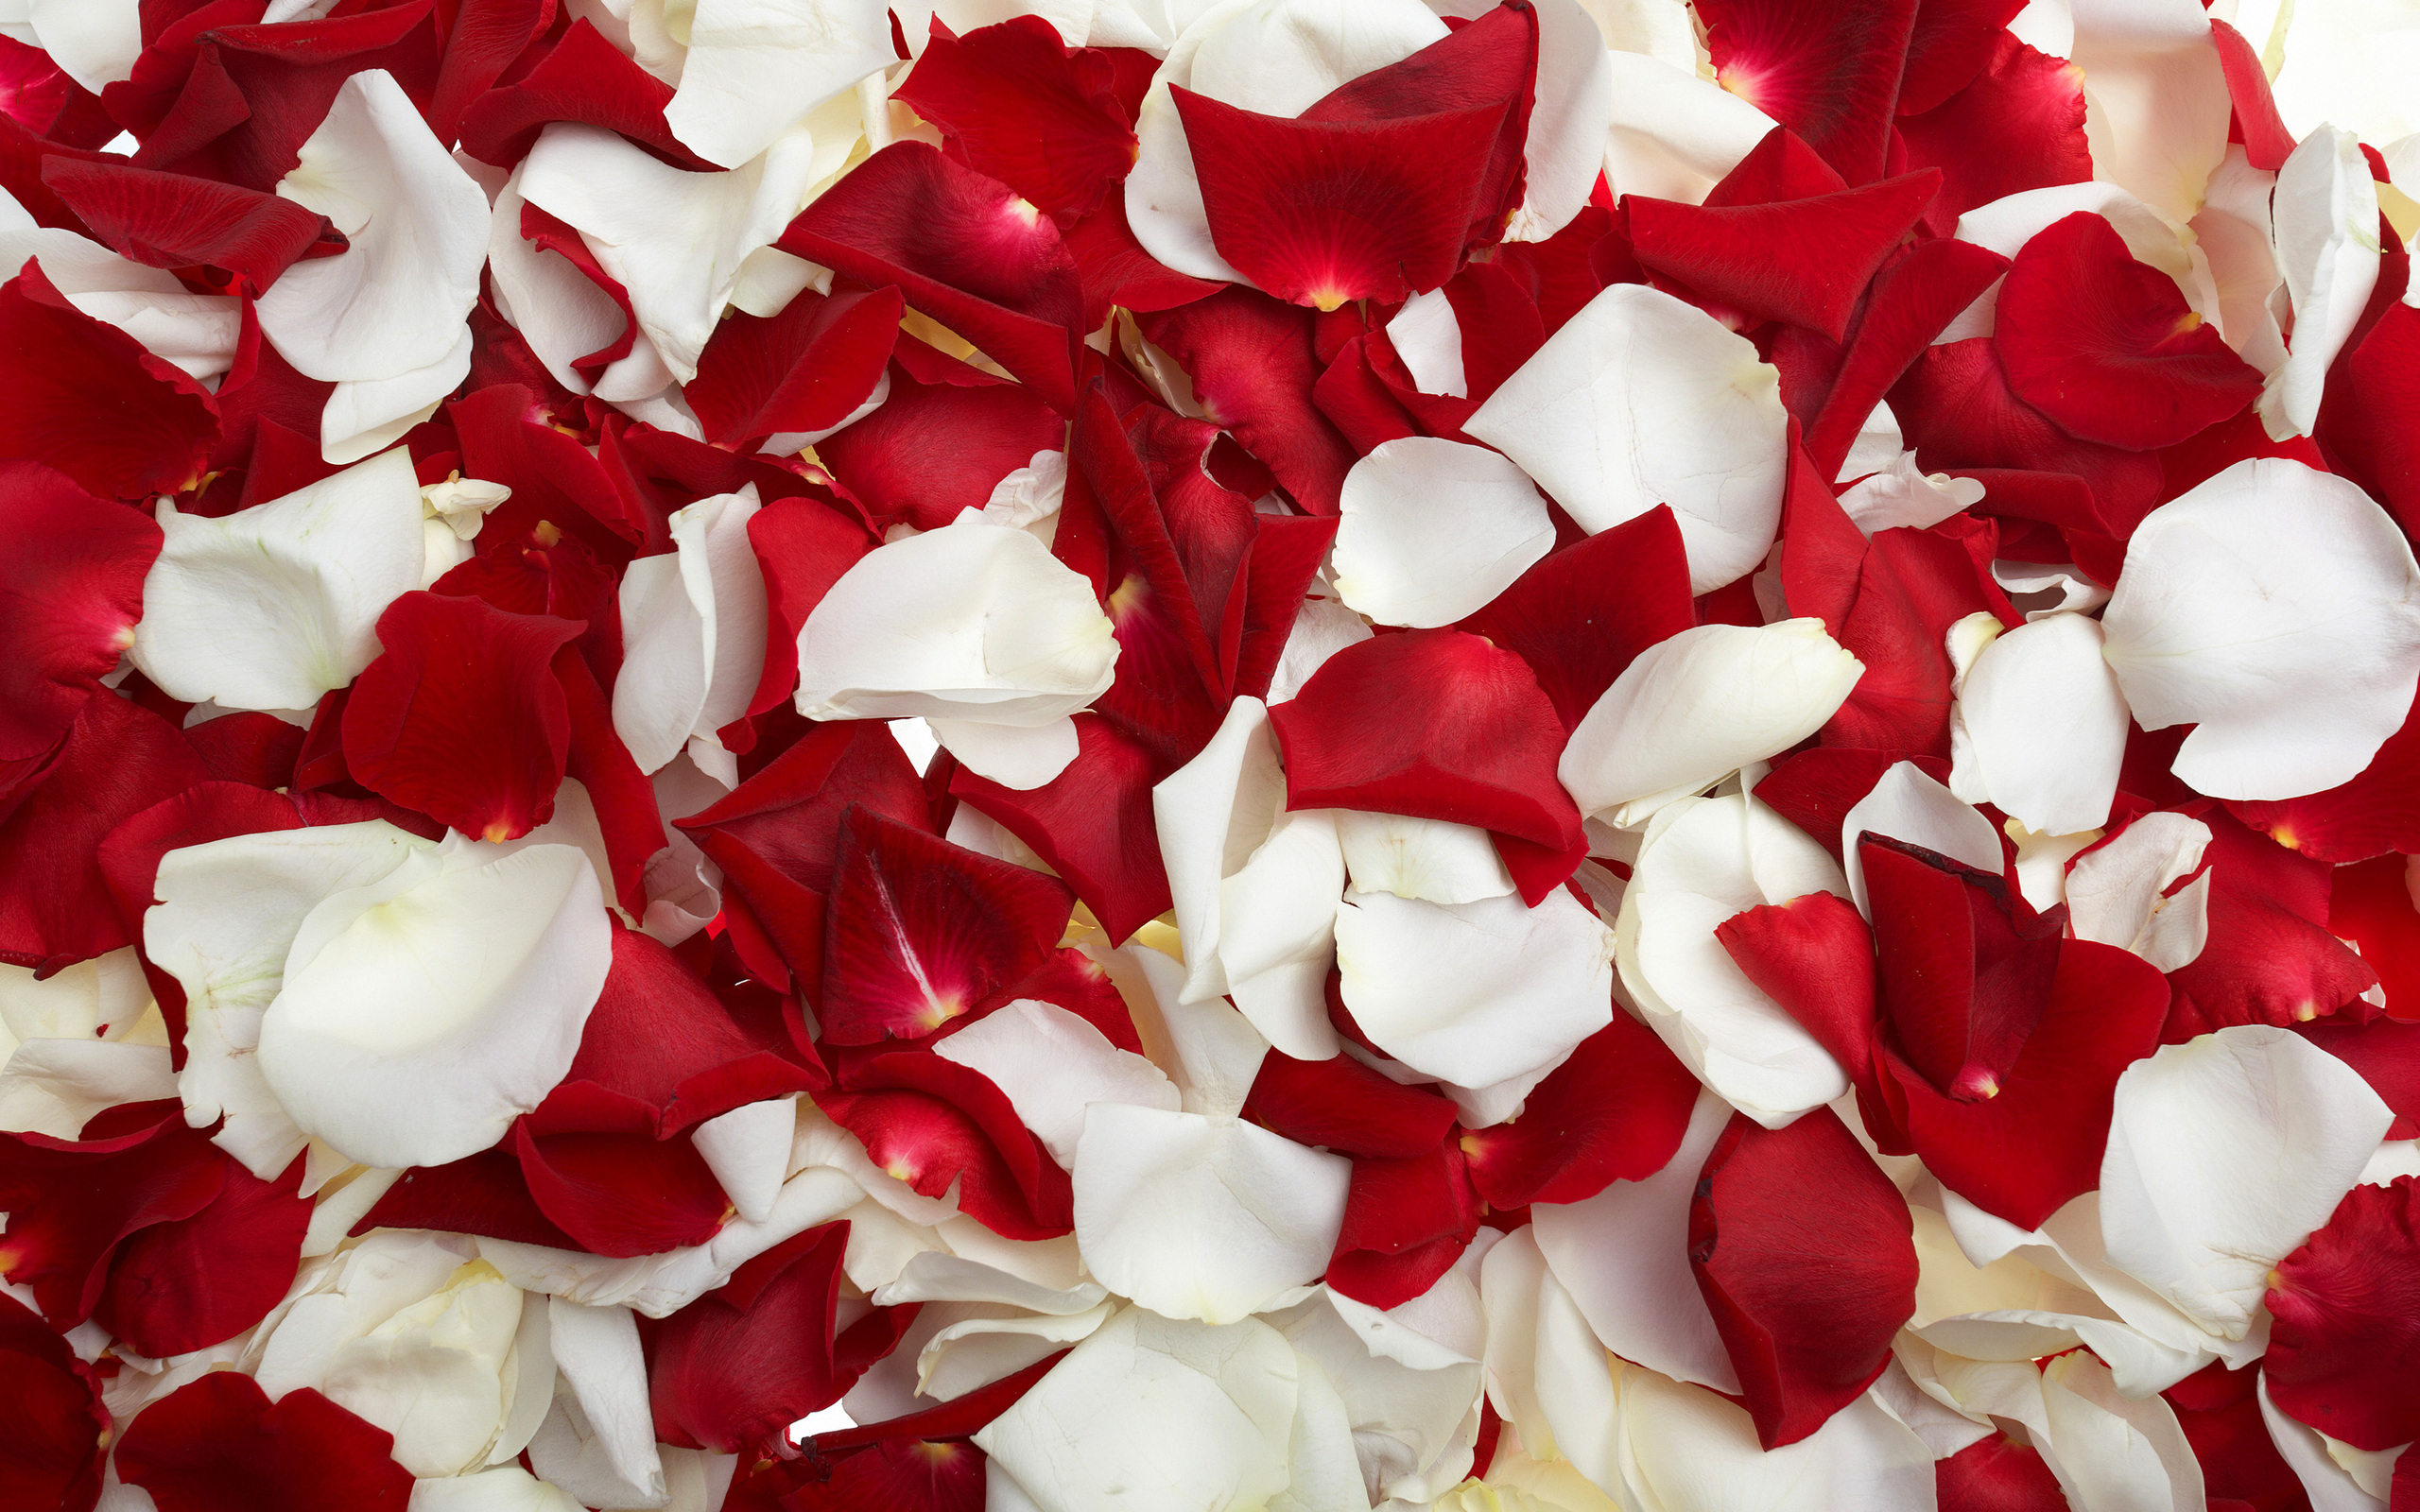 Red And White Roses Wallpaper High Definition High Quality